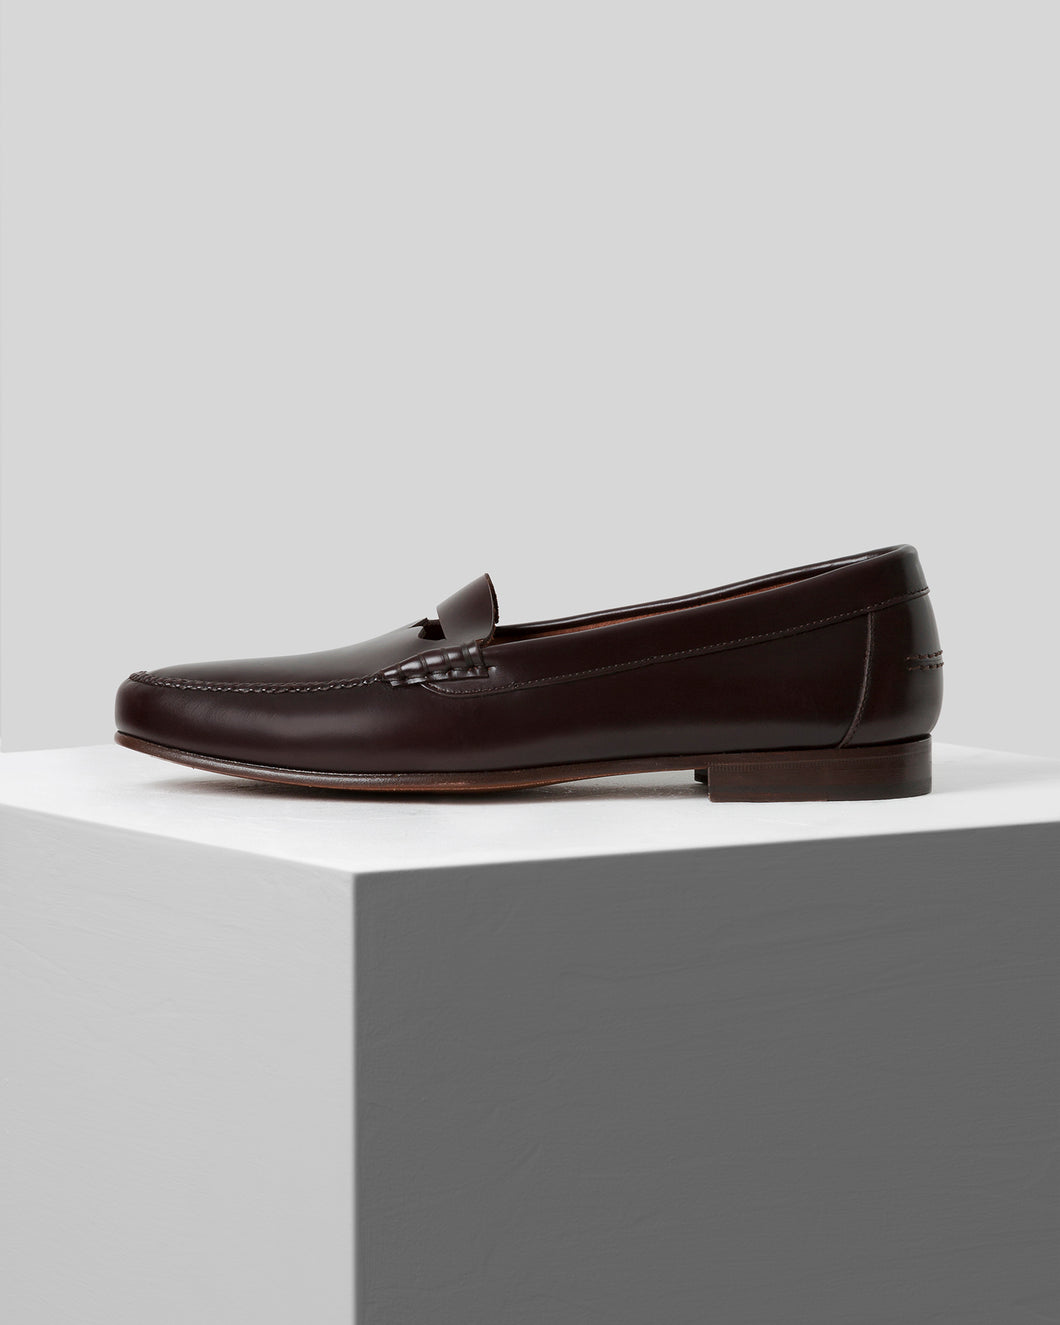 ARBELLO - Men's Cut-out Penny Loafer